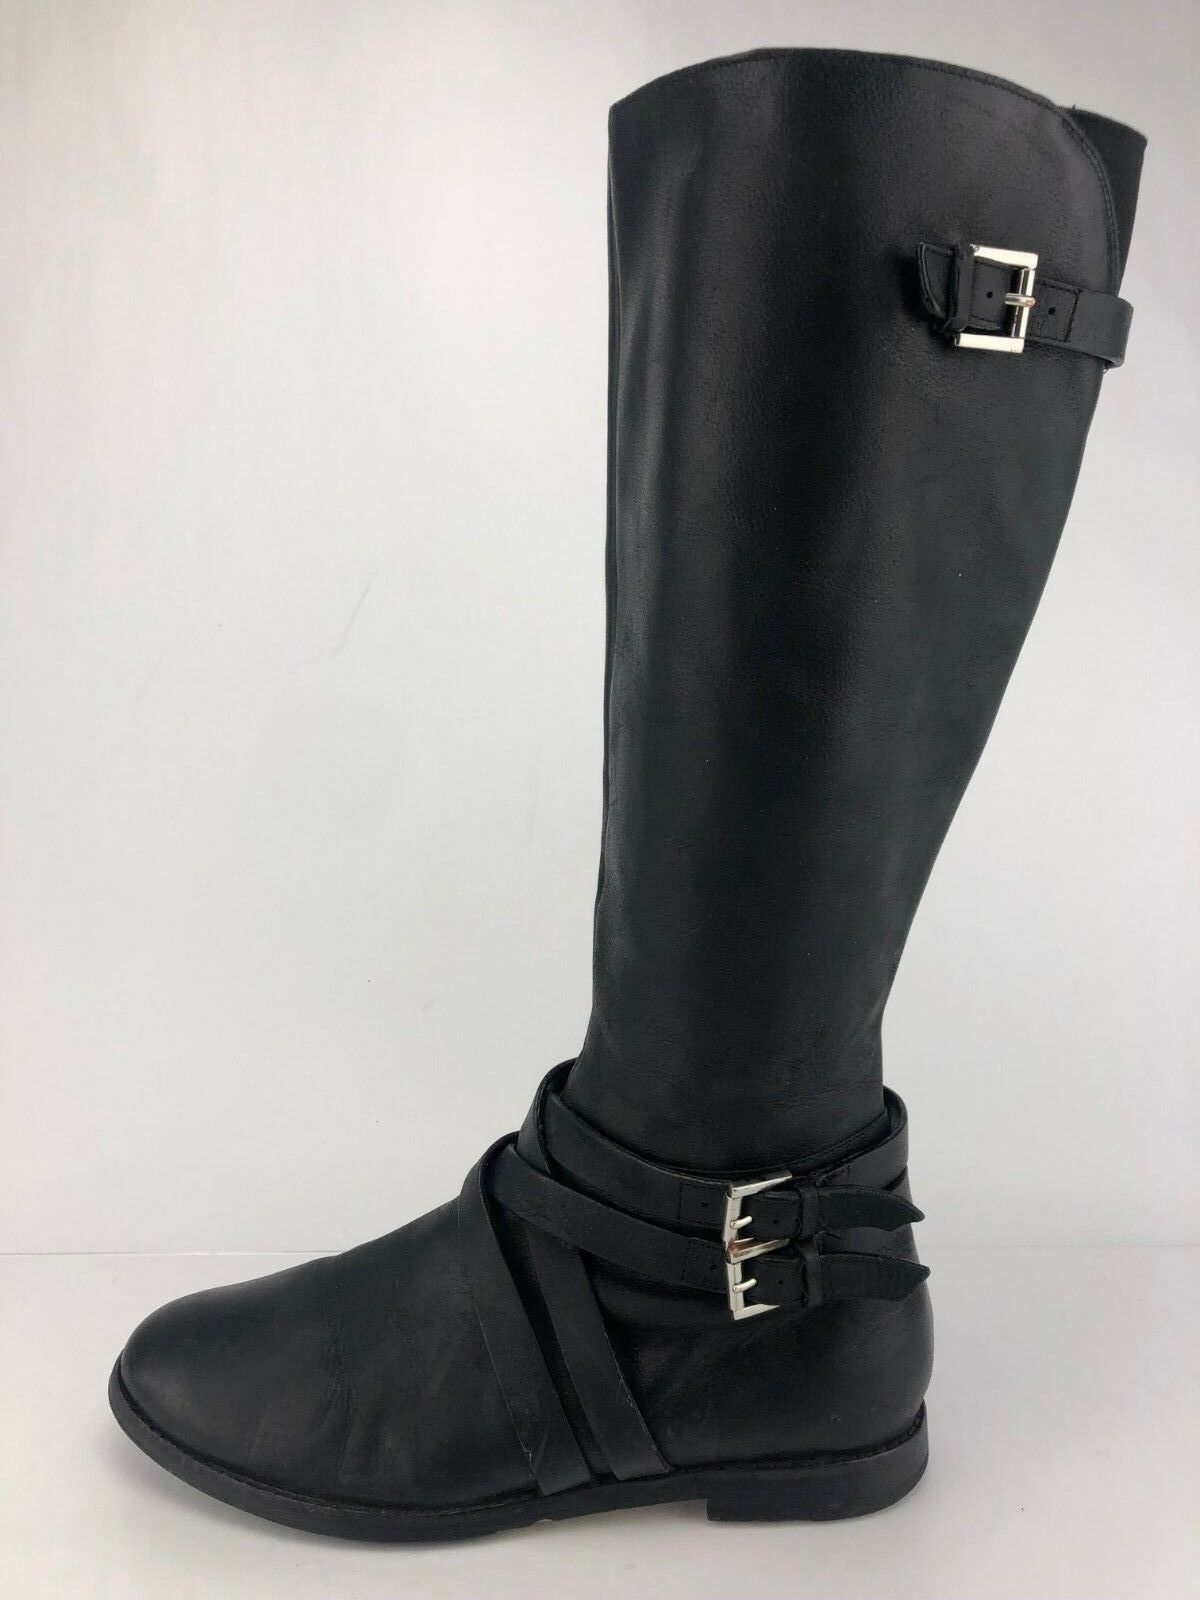 Cole Haan Air Knee High Boots Dress Black Leather Fashion Booties Womens 9 B